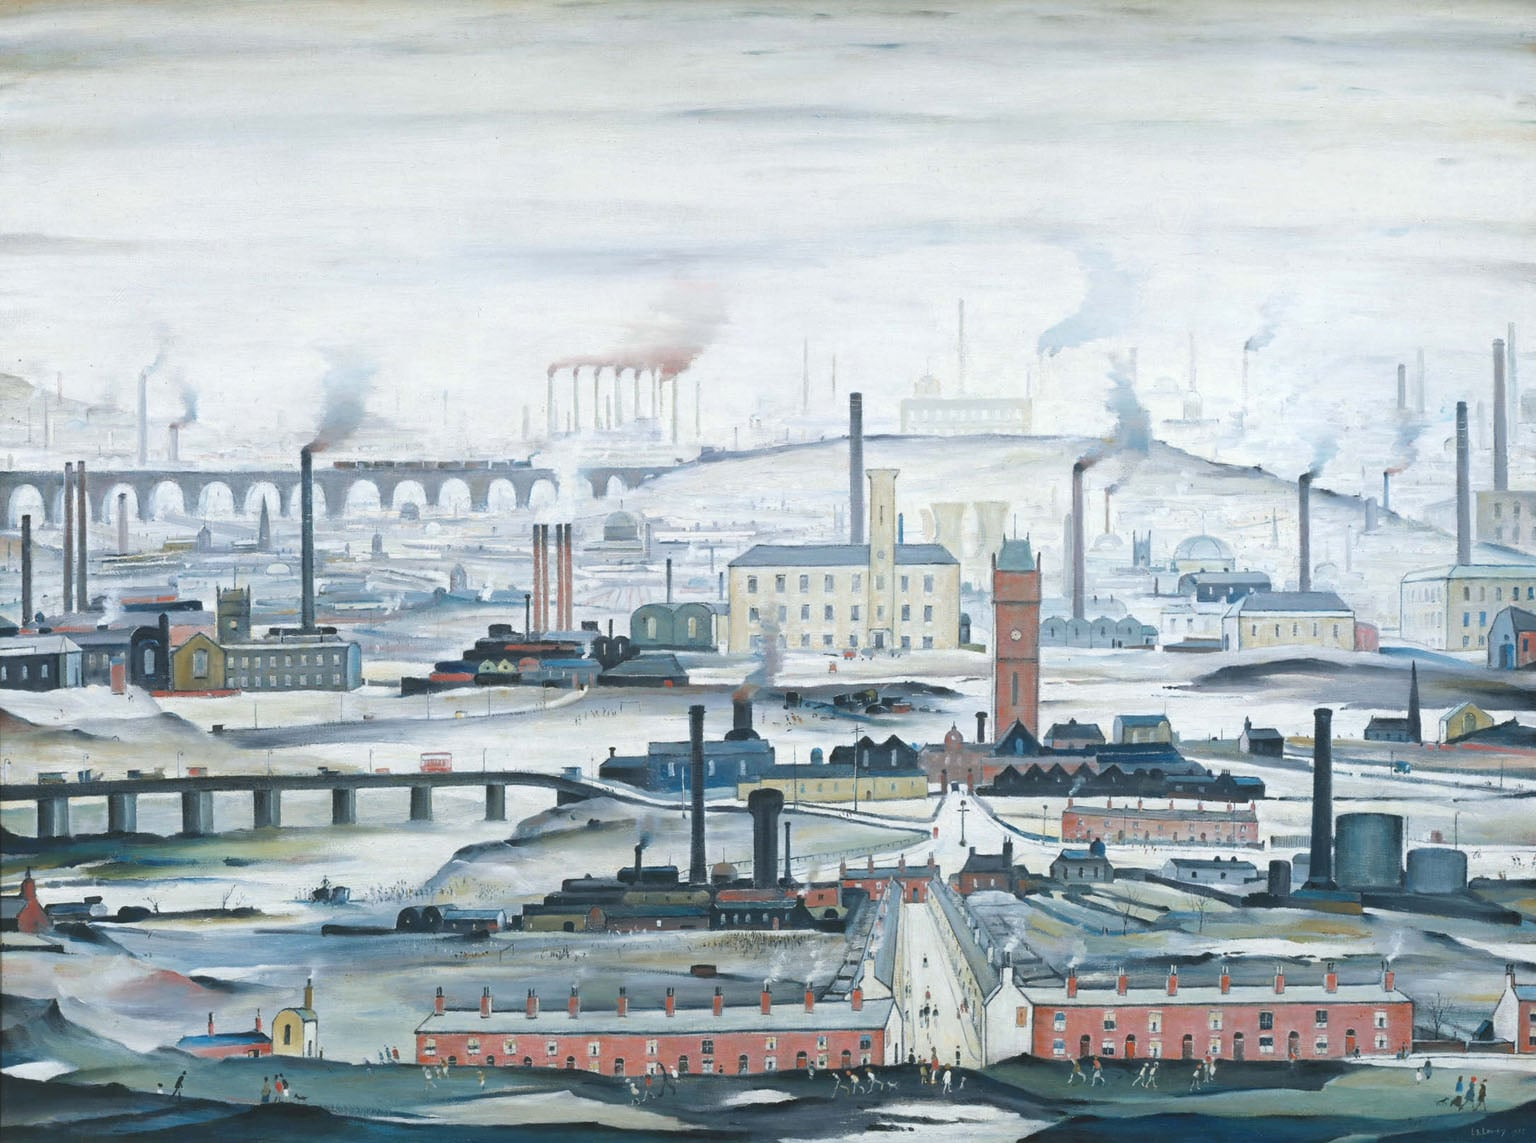 4. Lowry and the Painting of Modern Life, Tate Britain - L S Lowry, Industrial Landscape, 1955